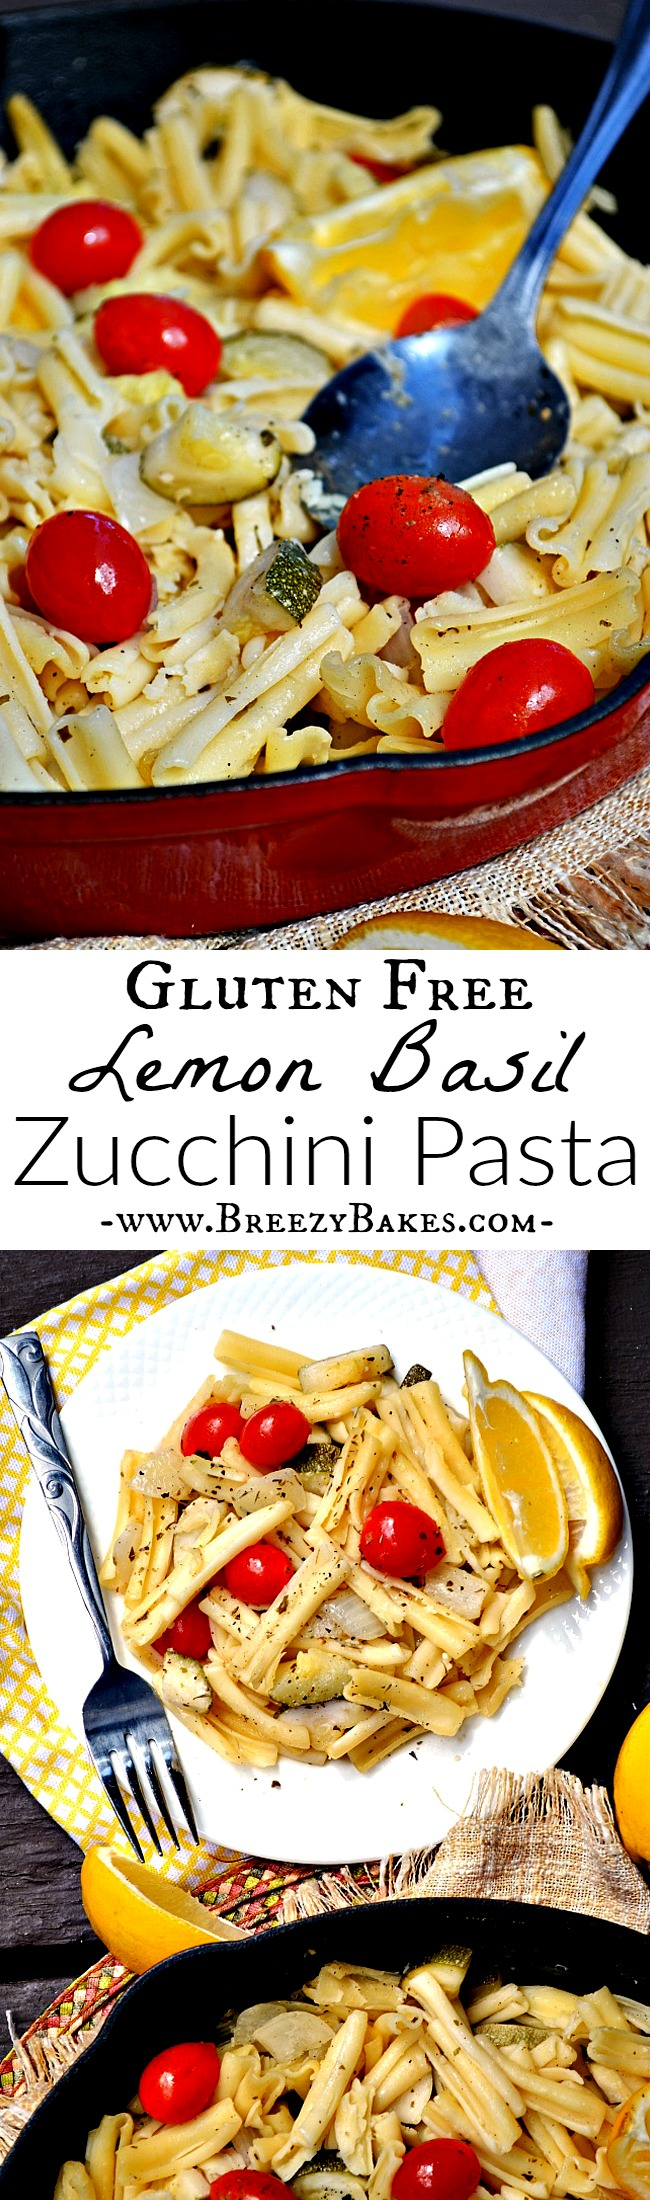 It's two thumbs up for this simply effortless 30 minute vegetarian Gluten Free Lemon Basil Zucchini Pasta dinner! It's light and flavorful with all the freshness of spring.